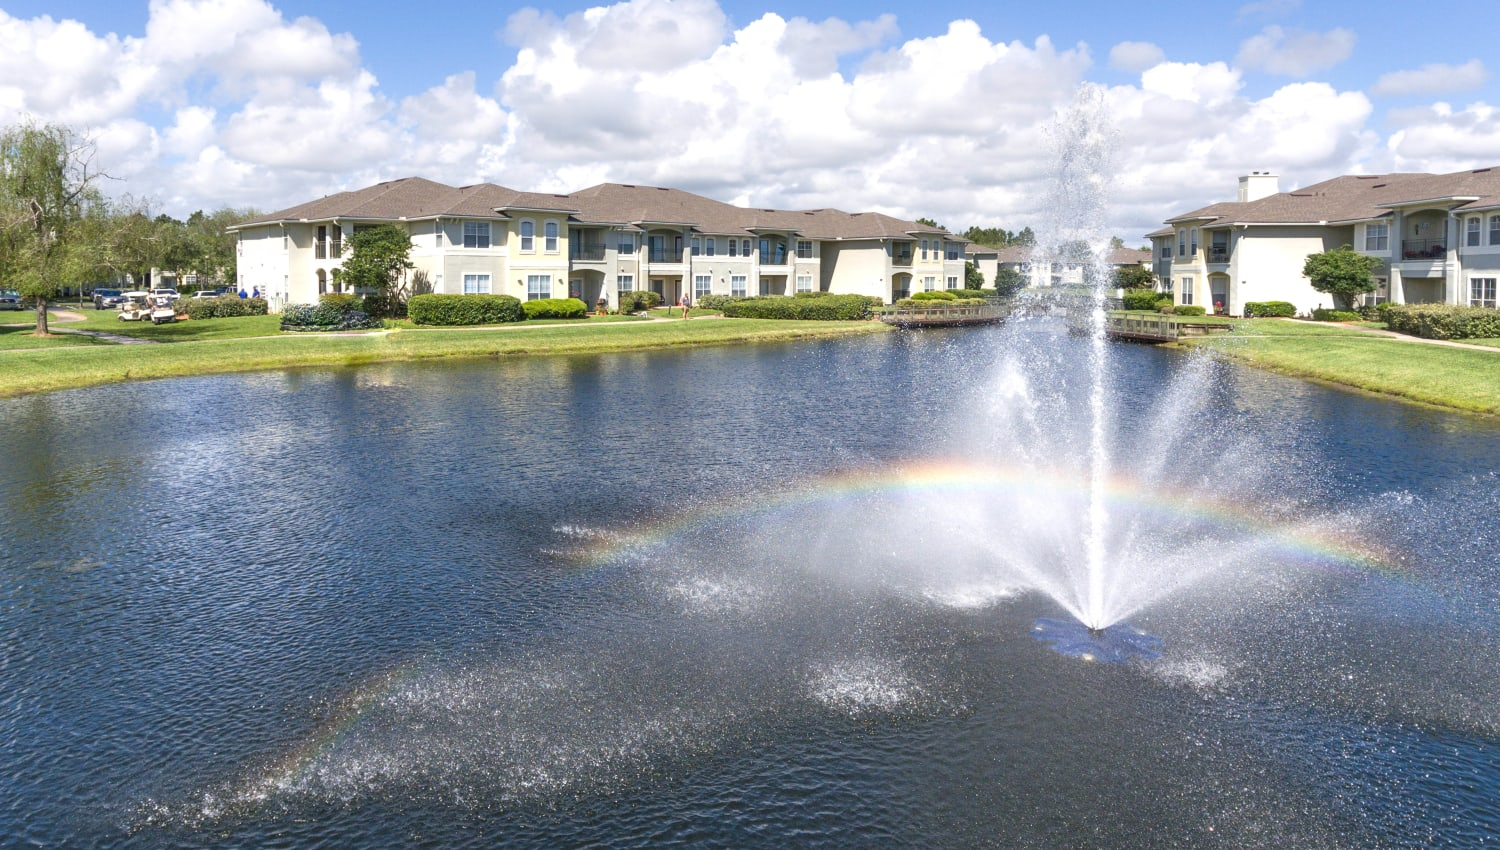 Fountain in the lake at our luxury community at Cape House in Jacksonville, Florida